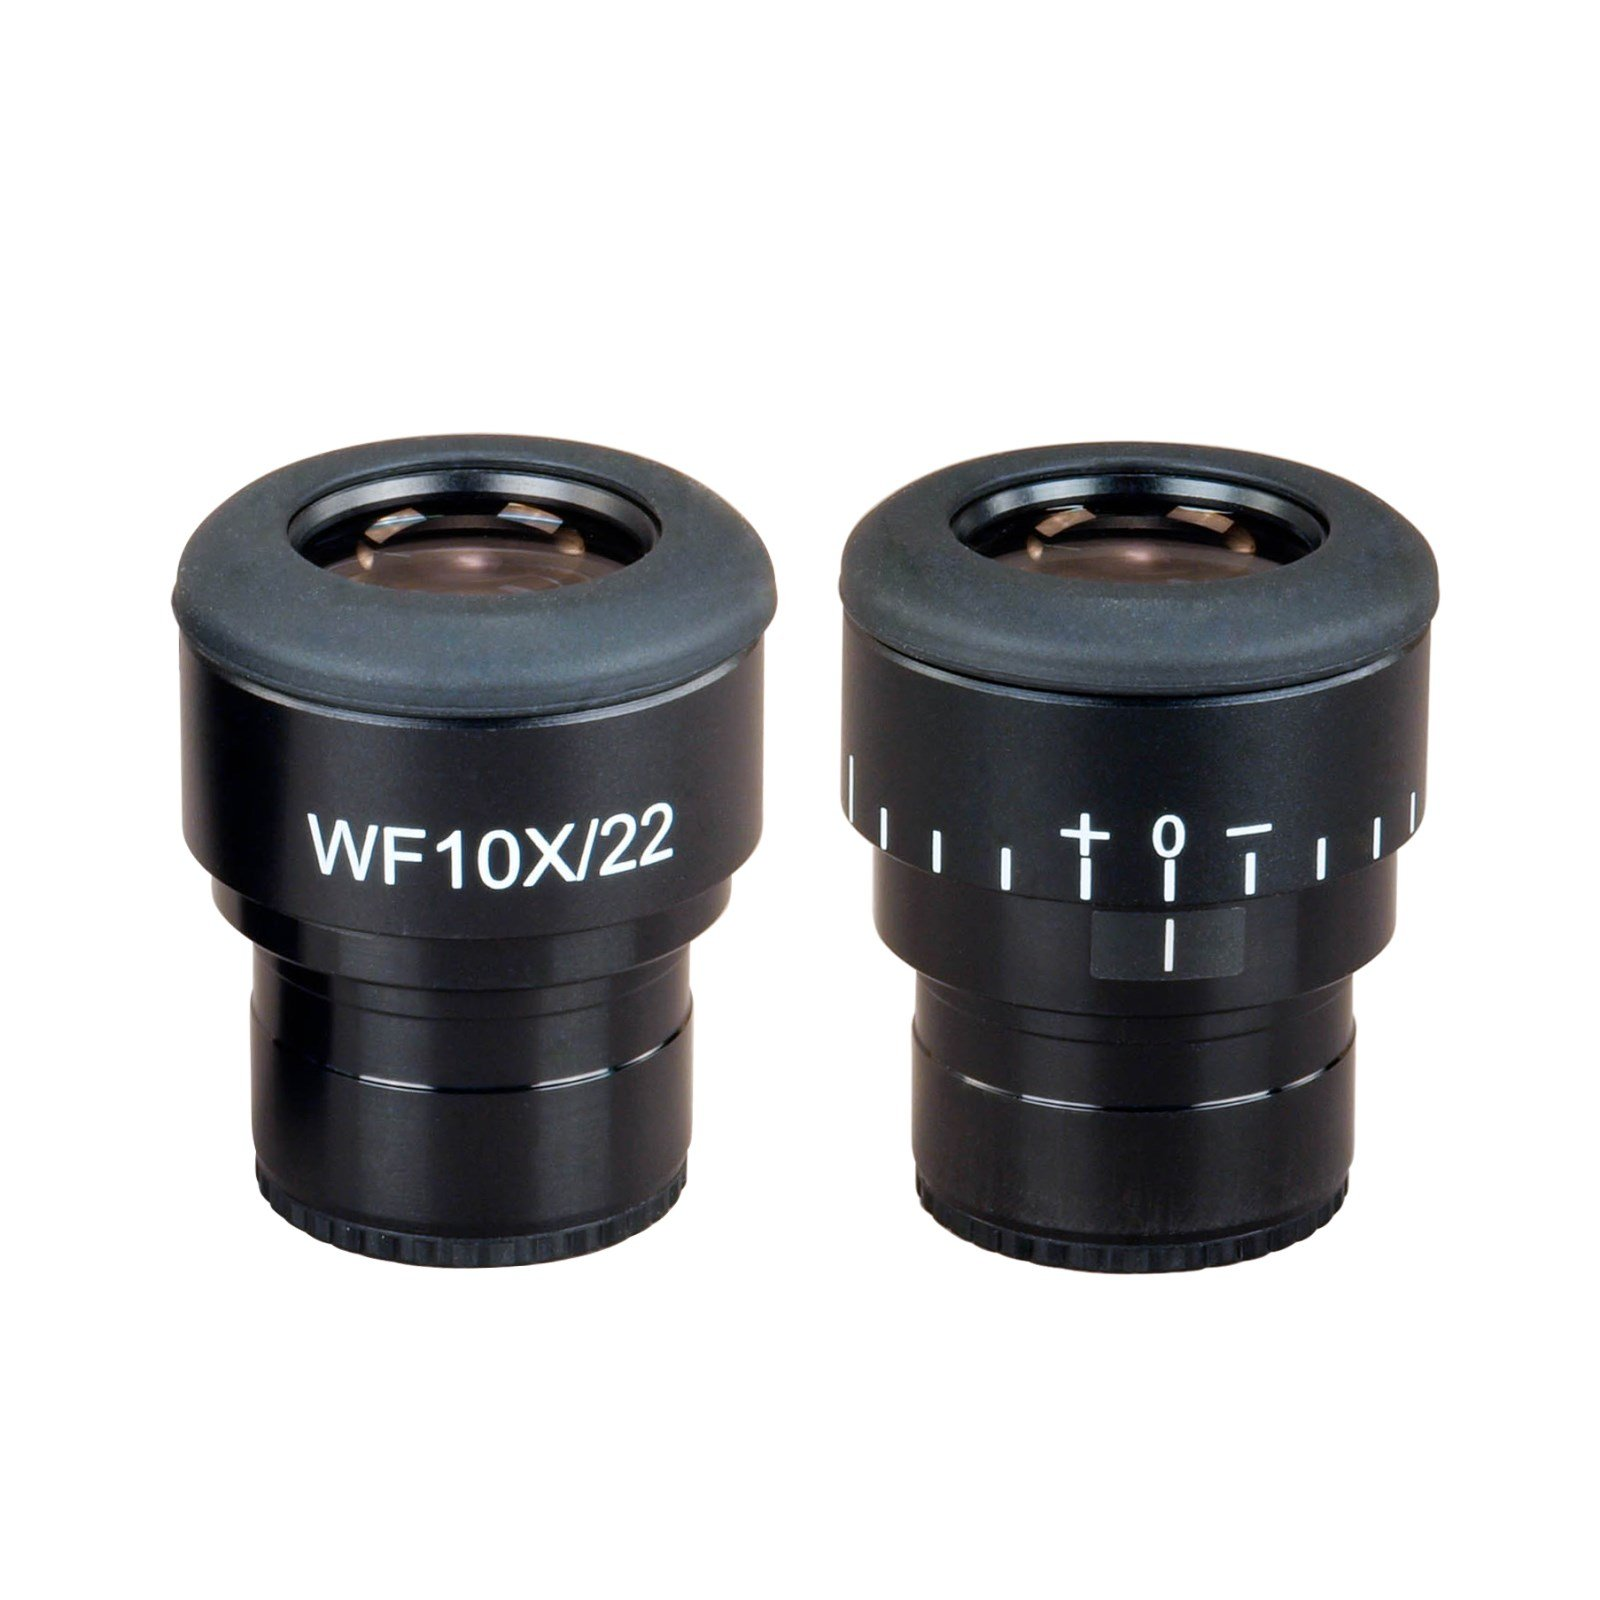 OMAX A Pair of Super Widefield Microscope Eyepieces WF10X/22 w Adjustable Diopter (30.0mm)